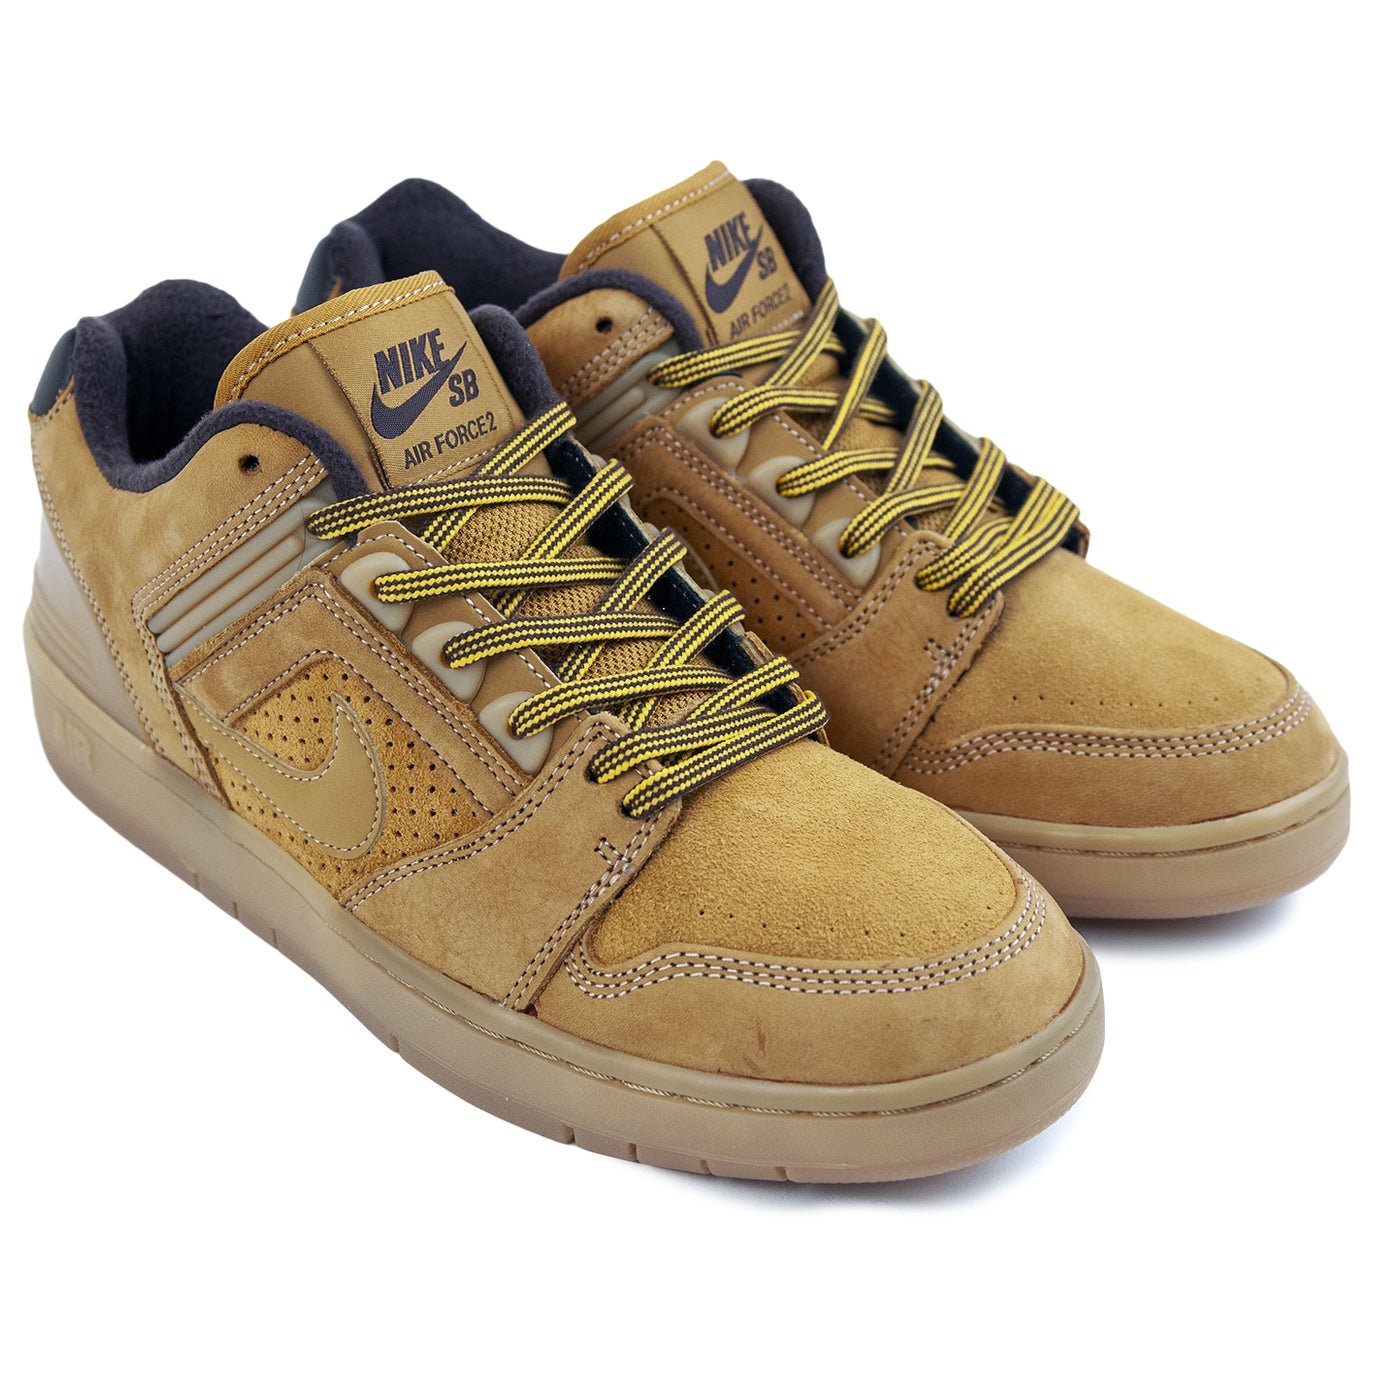 2719a3ba70d5b Air Force II Low Premium Shoe in Bronze   Bronze - Baroque Brown by ...